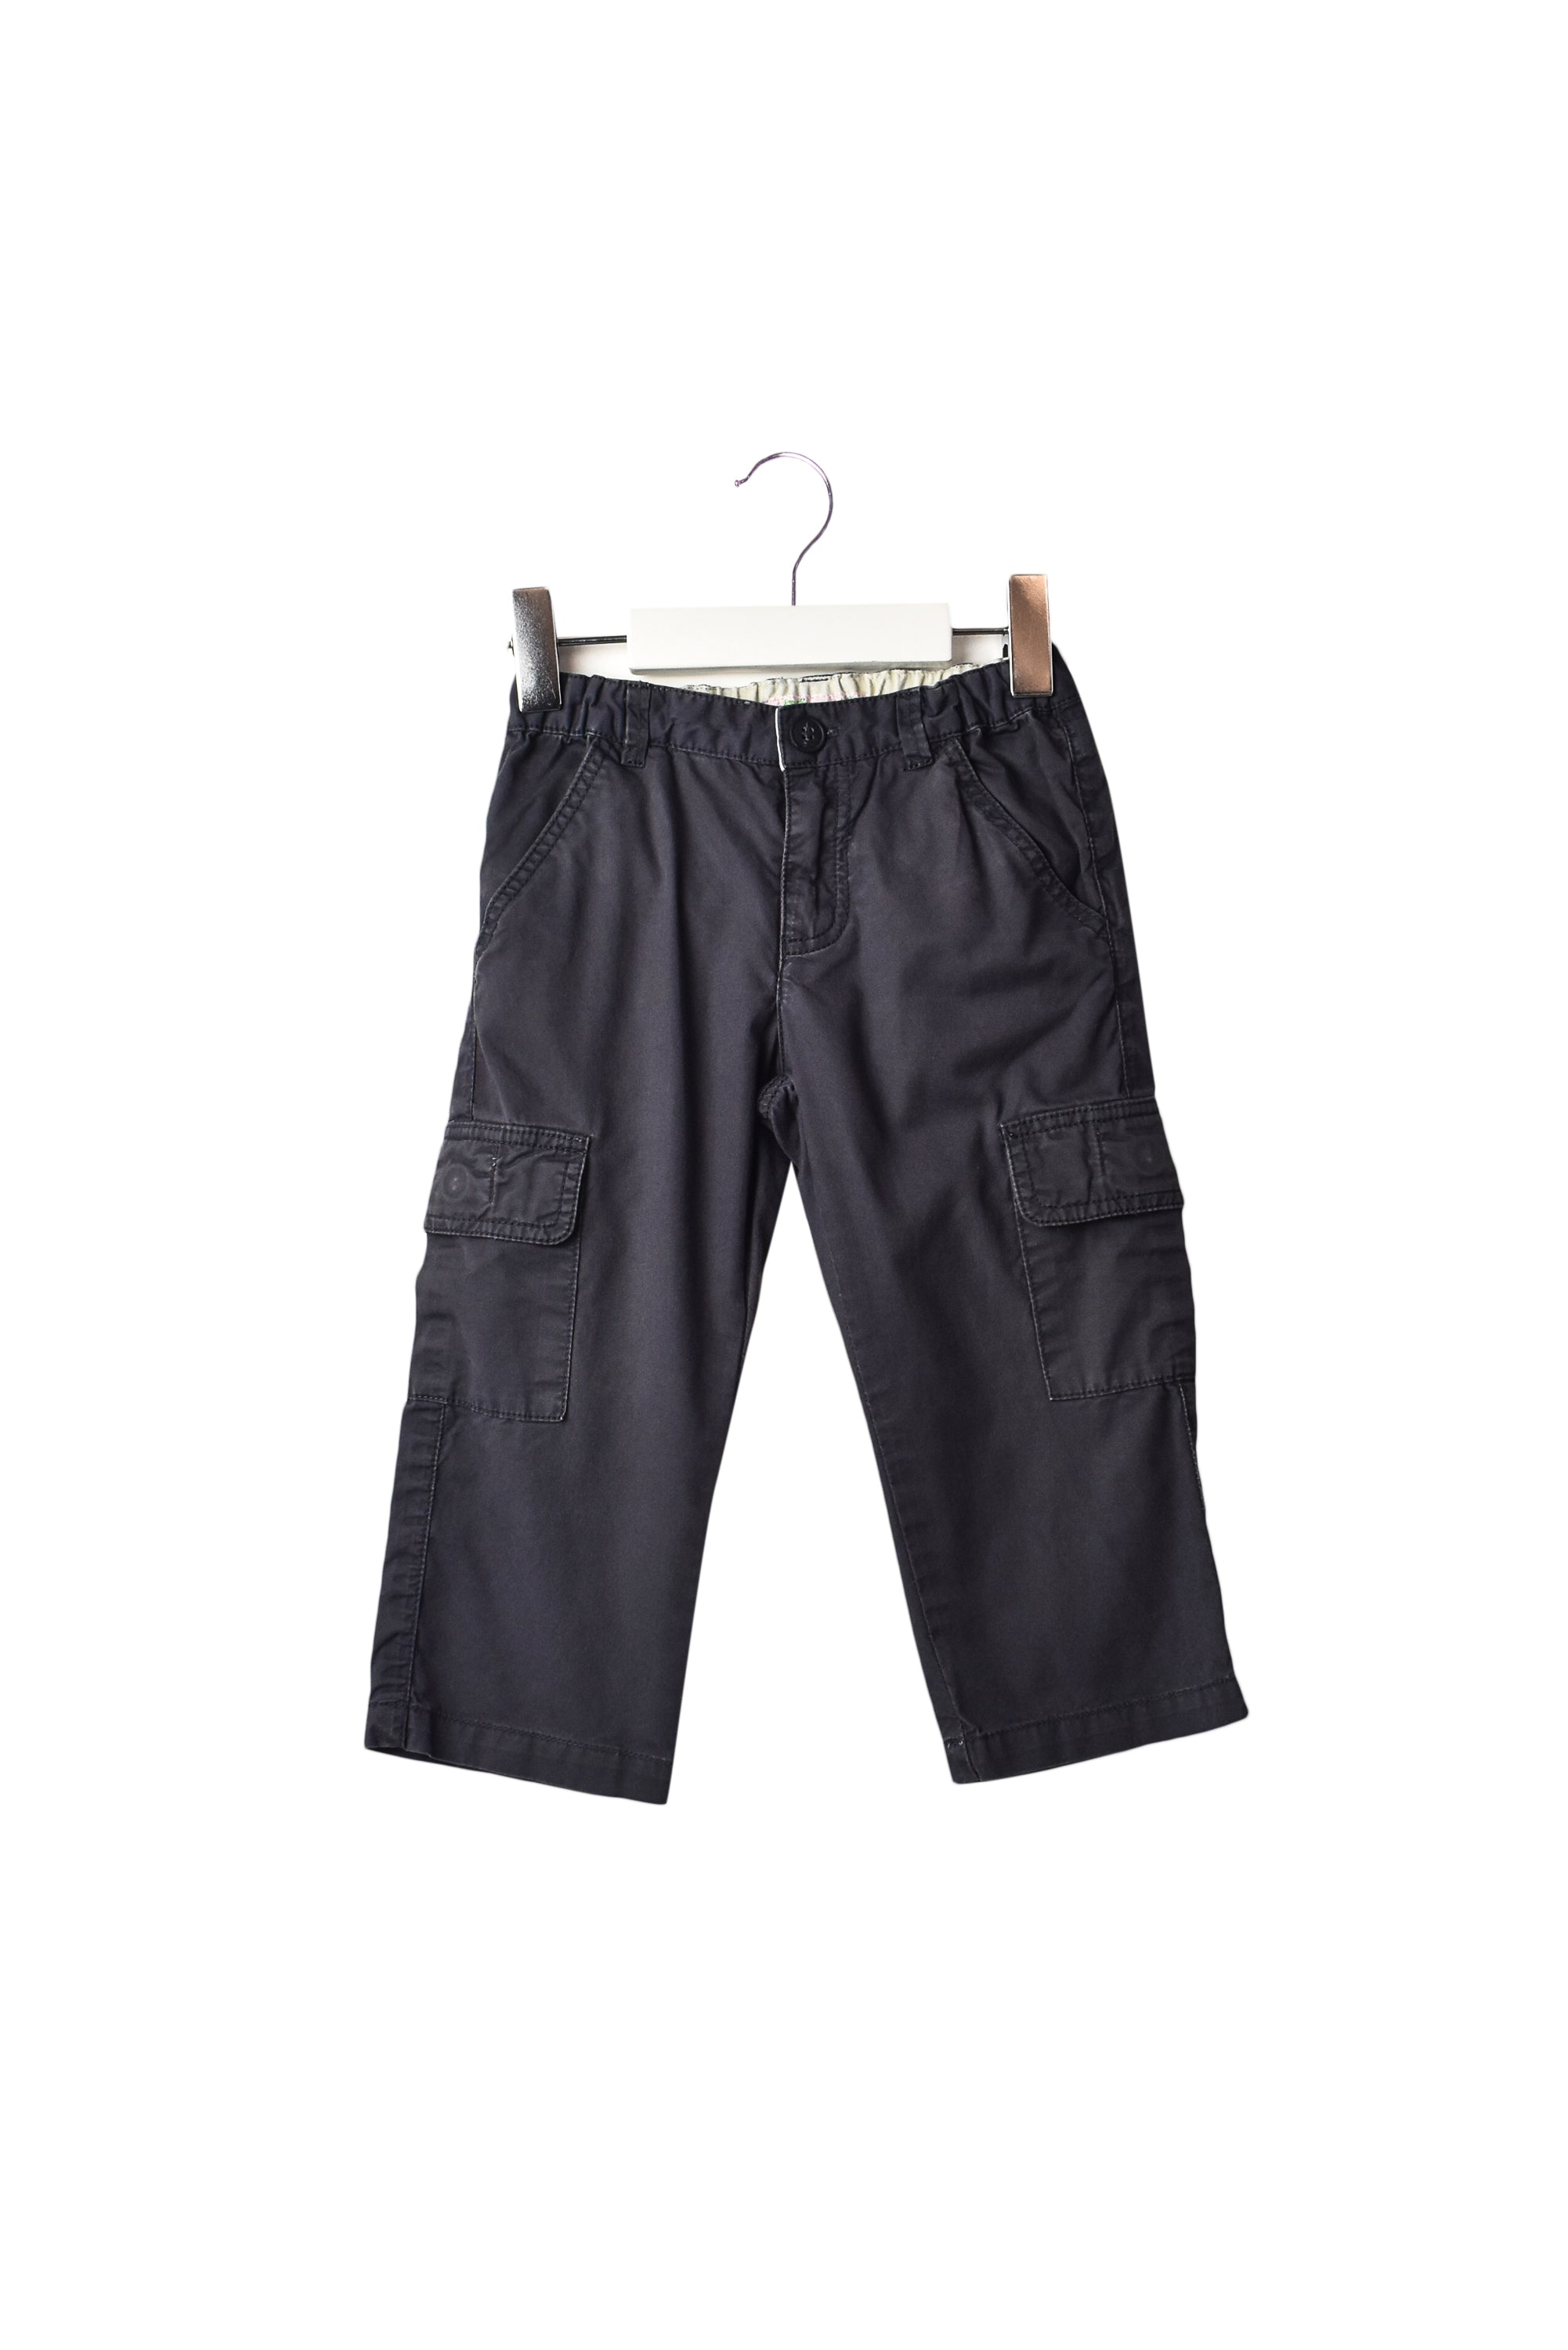 10006244 Bonpoint Kids~Pants 2T at Retykle